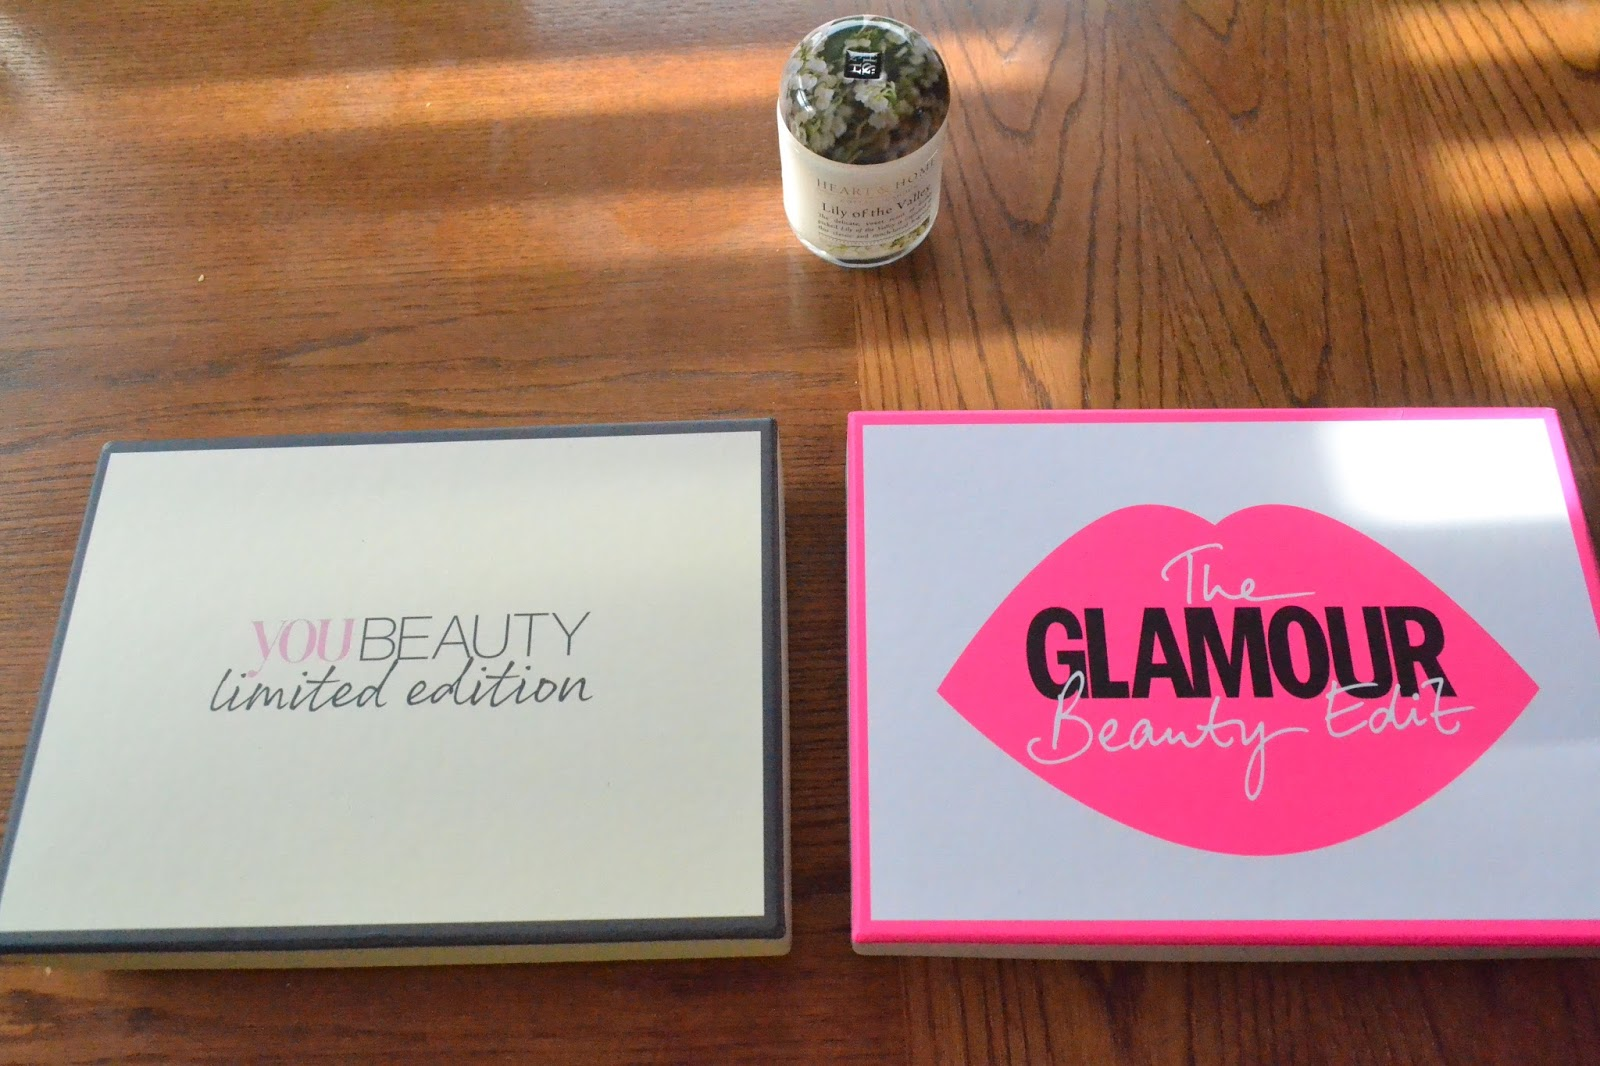 you beauty limited edition beauty box and glamour beauty box